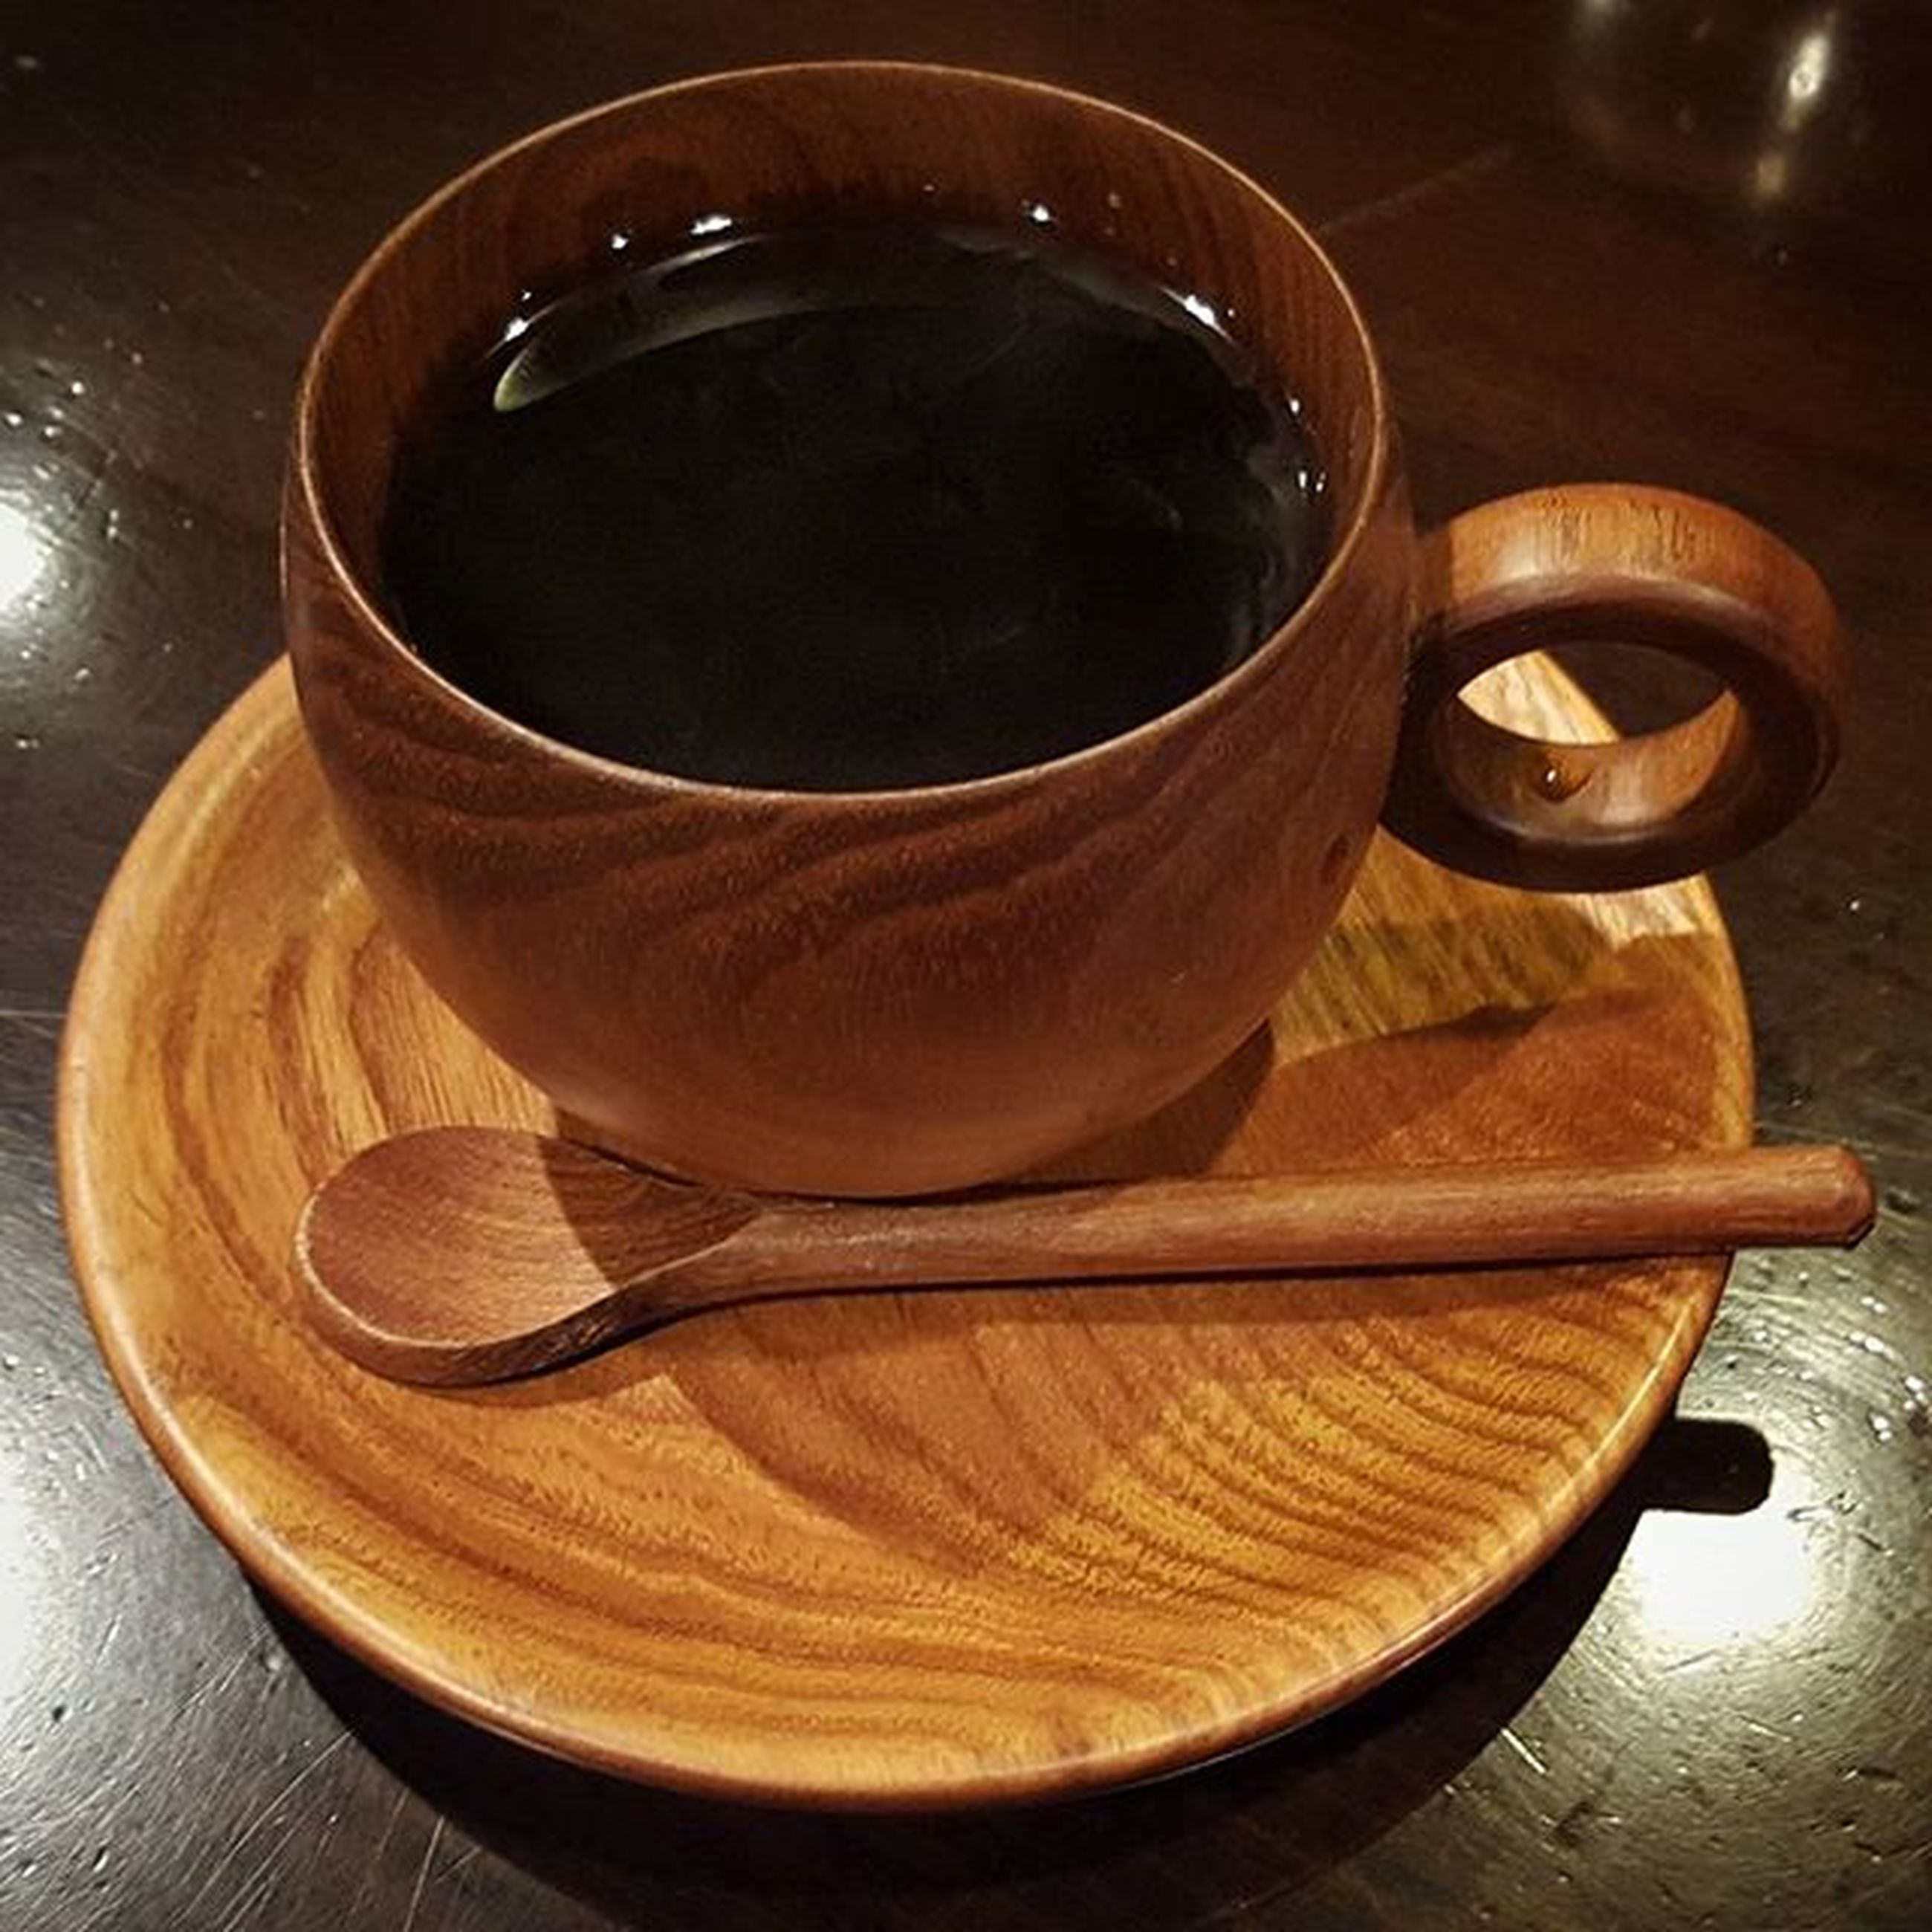 table, indoors, food and drink, still life, coffee cup, drink, wood - material, high angle view, freshness, refreshment, coffee - drink, saucer, close-up, cup, wooden, coffee, no people, spoon, directly above, healthy eating